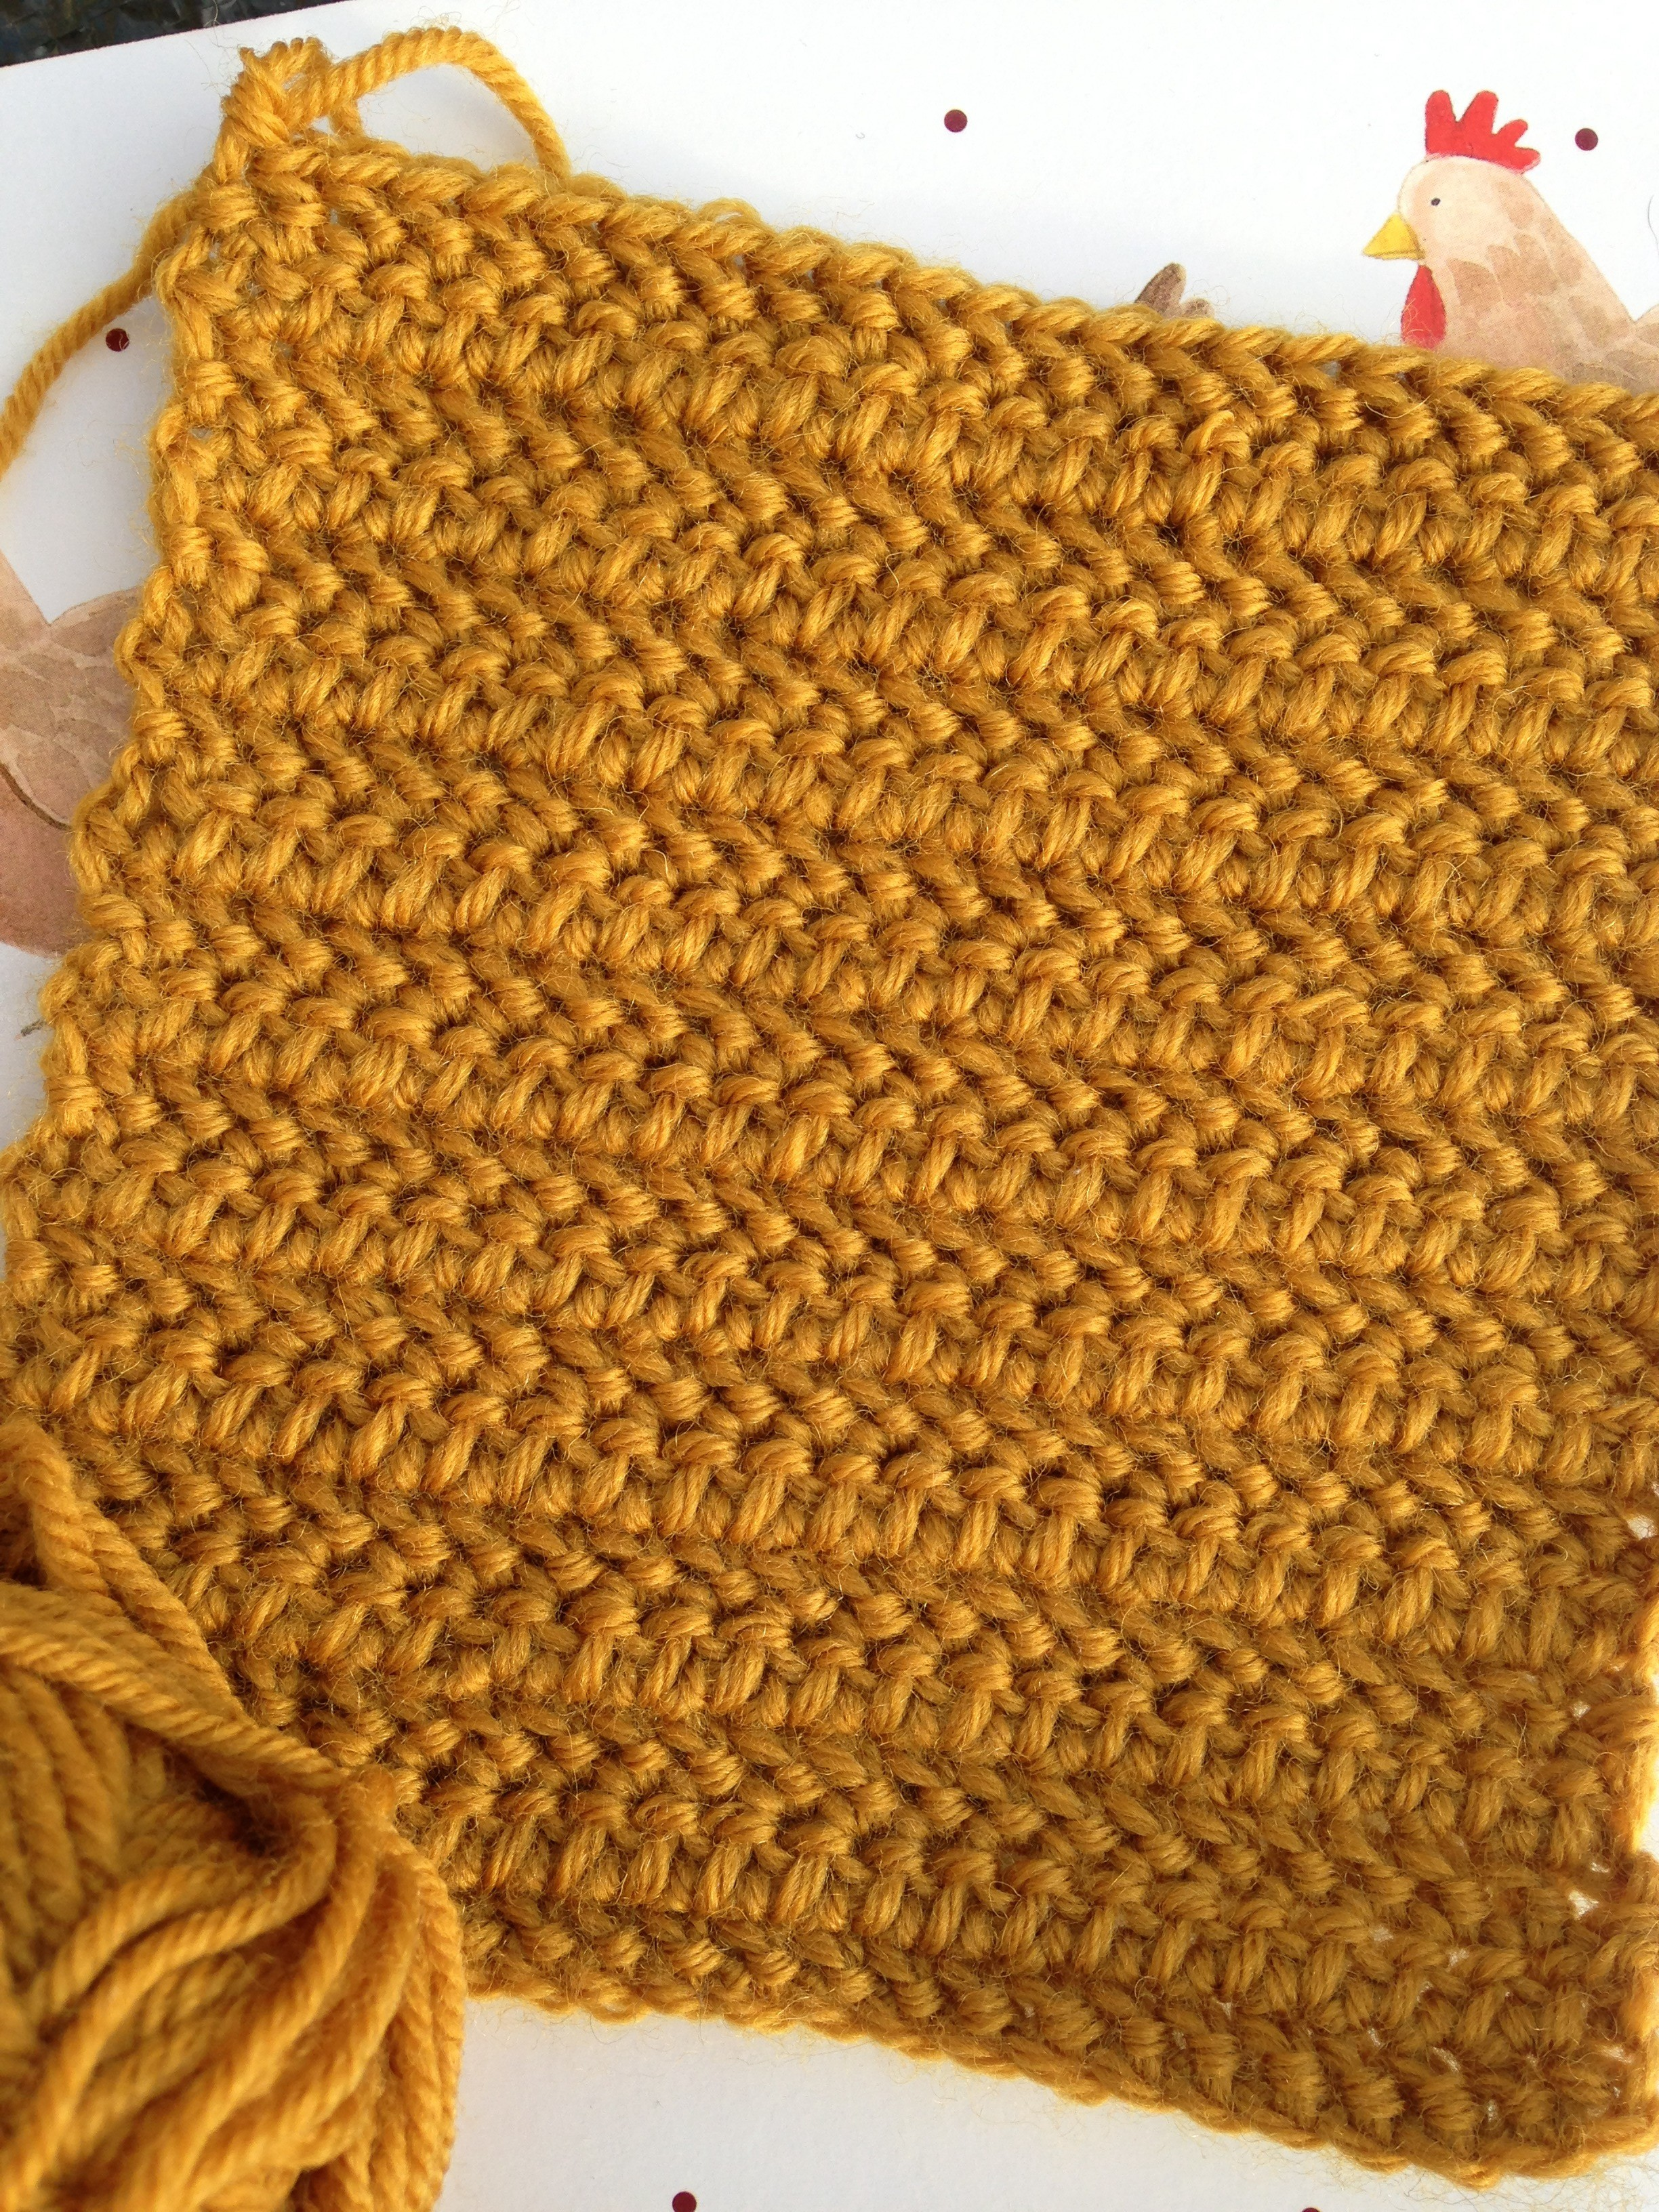 Instructions to make a herringbone half treble crochet stitch this pattern is taken from the harmony guide to crochet stitches 1986 lyric books ltd and uses uk terms herringbone half treble dt1010fo